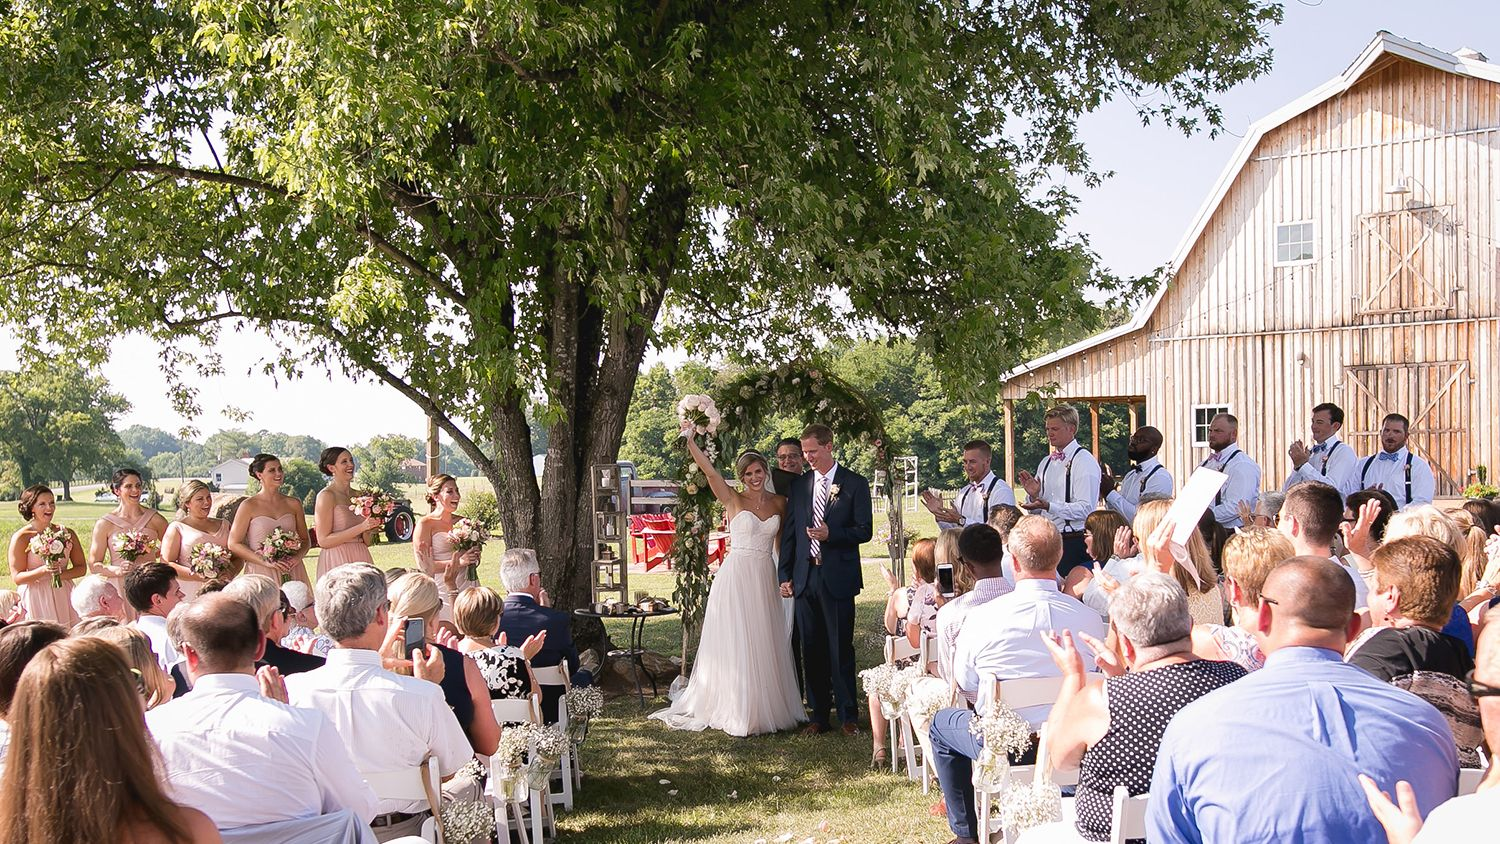 Wedding Ceremony under Oak tree close to Barn